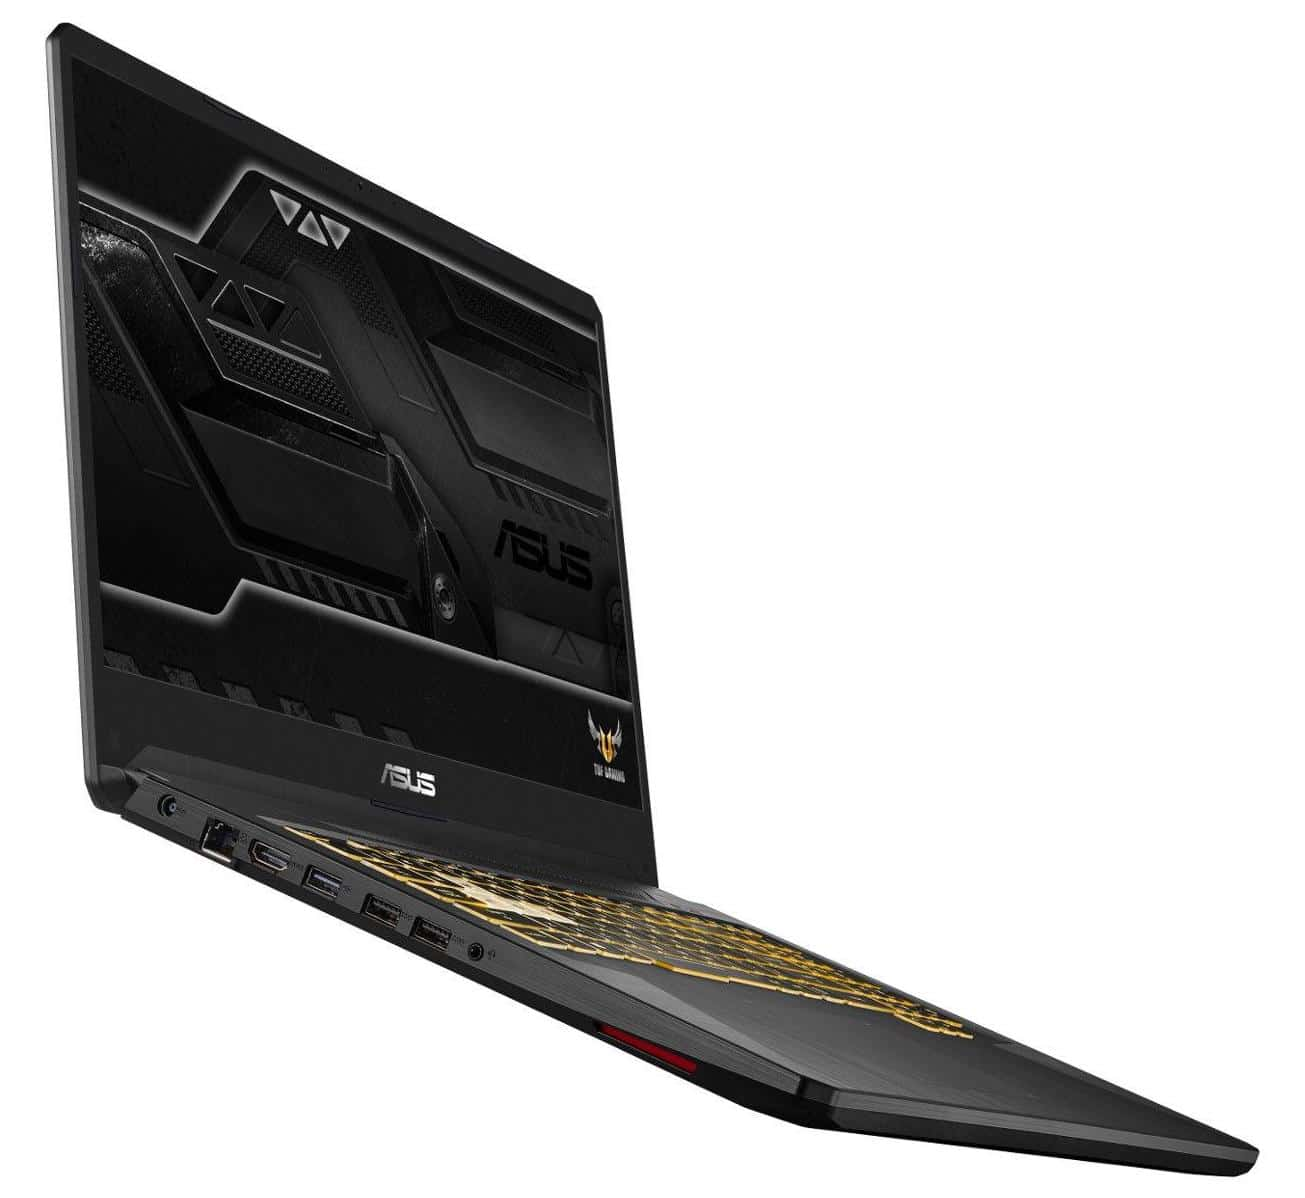 Solde PC Portable Gamer à 1199€